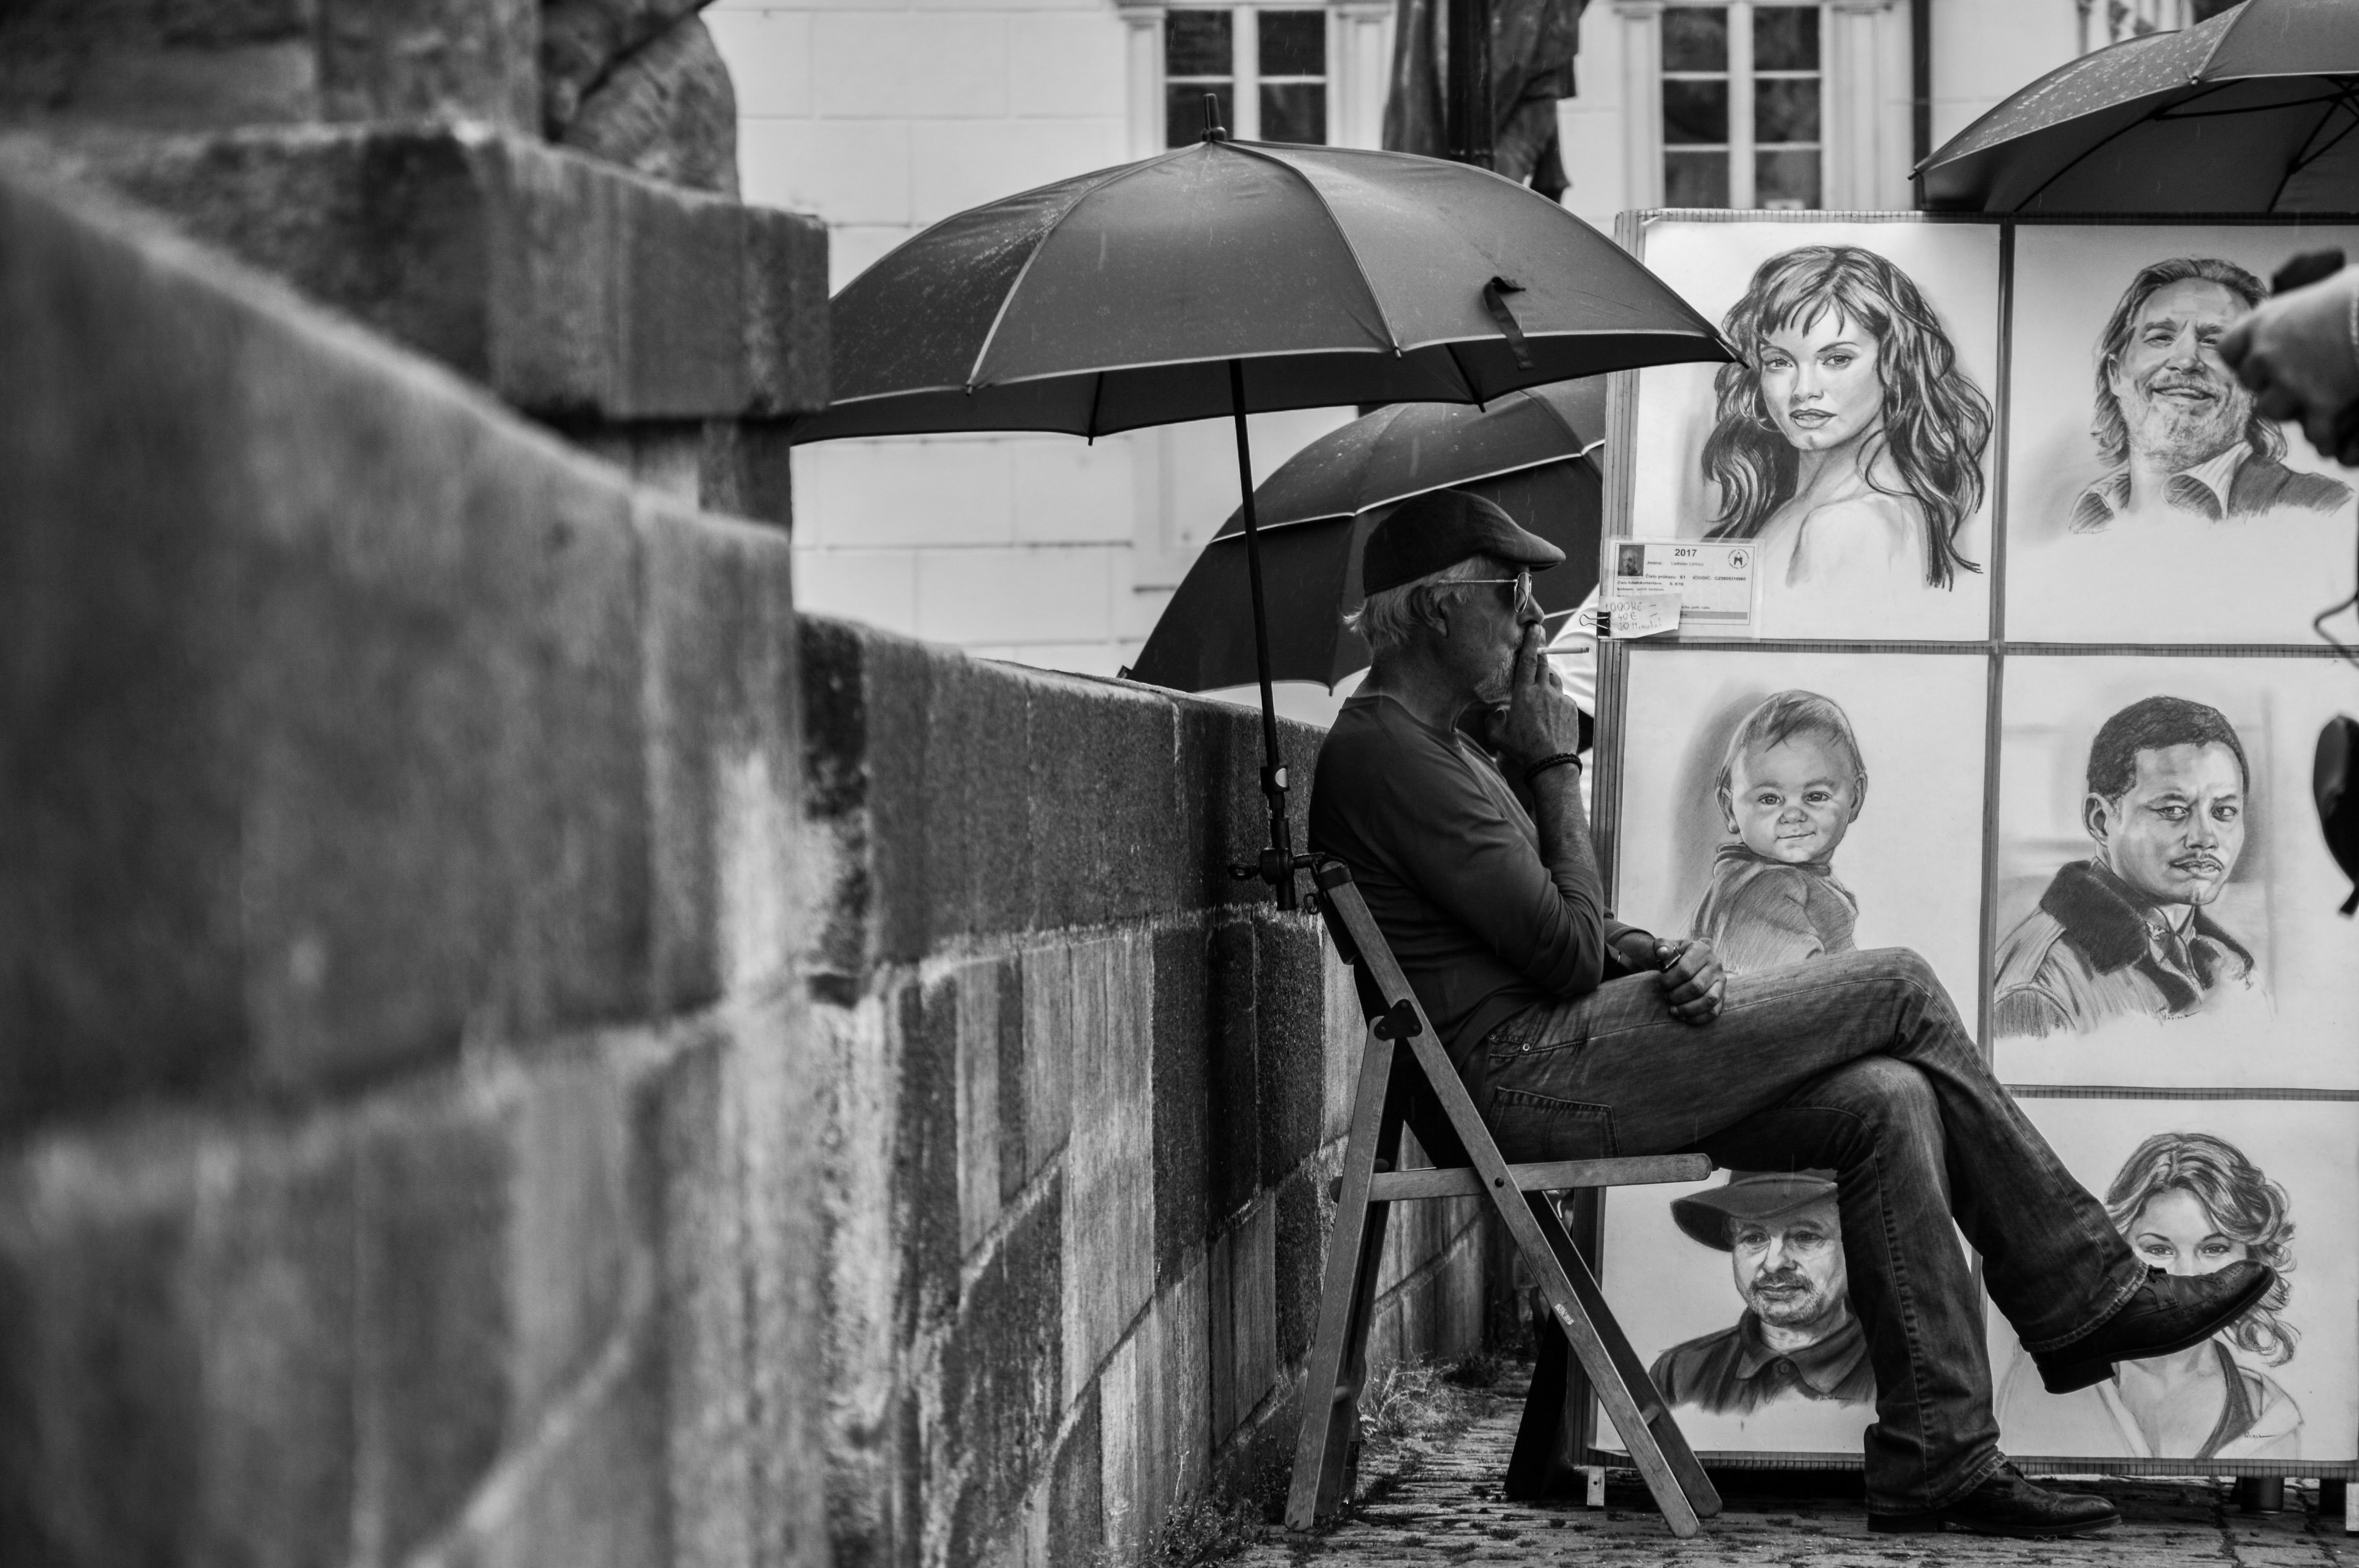 Black and white photo of man smoking under umbrella next to hand drawings in Prague